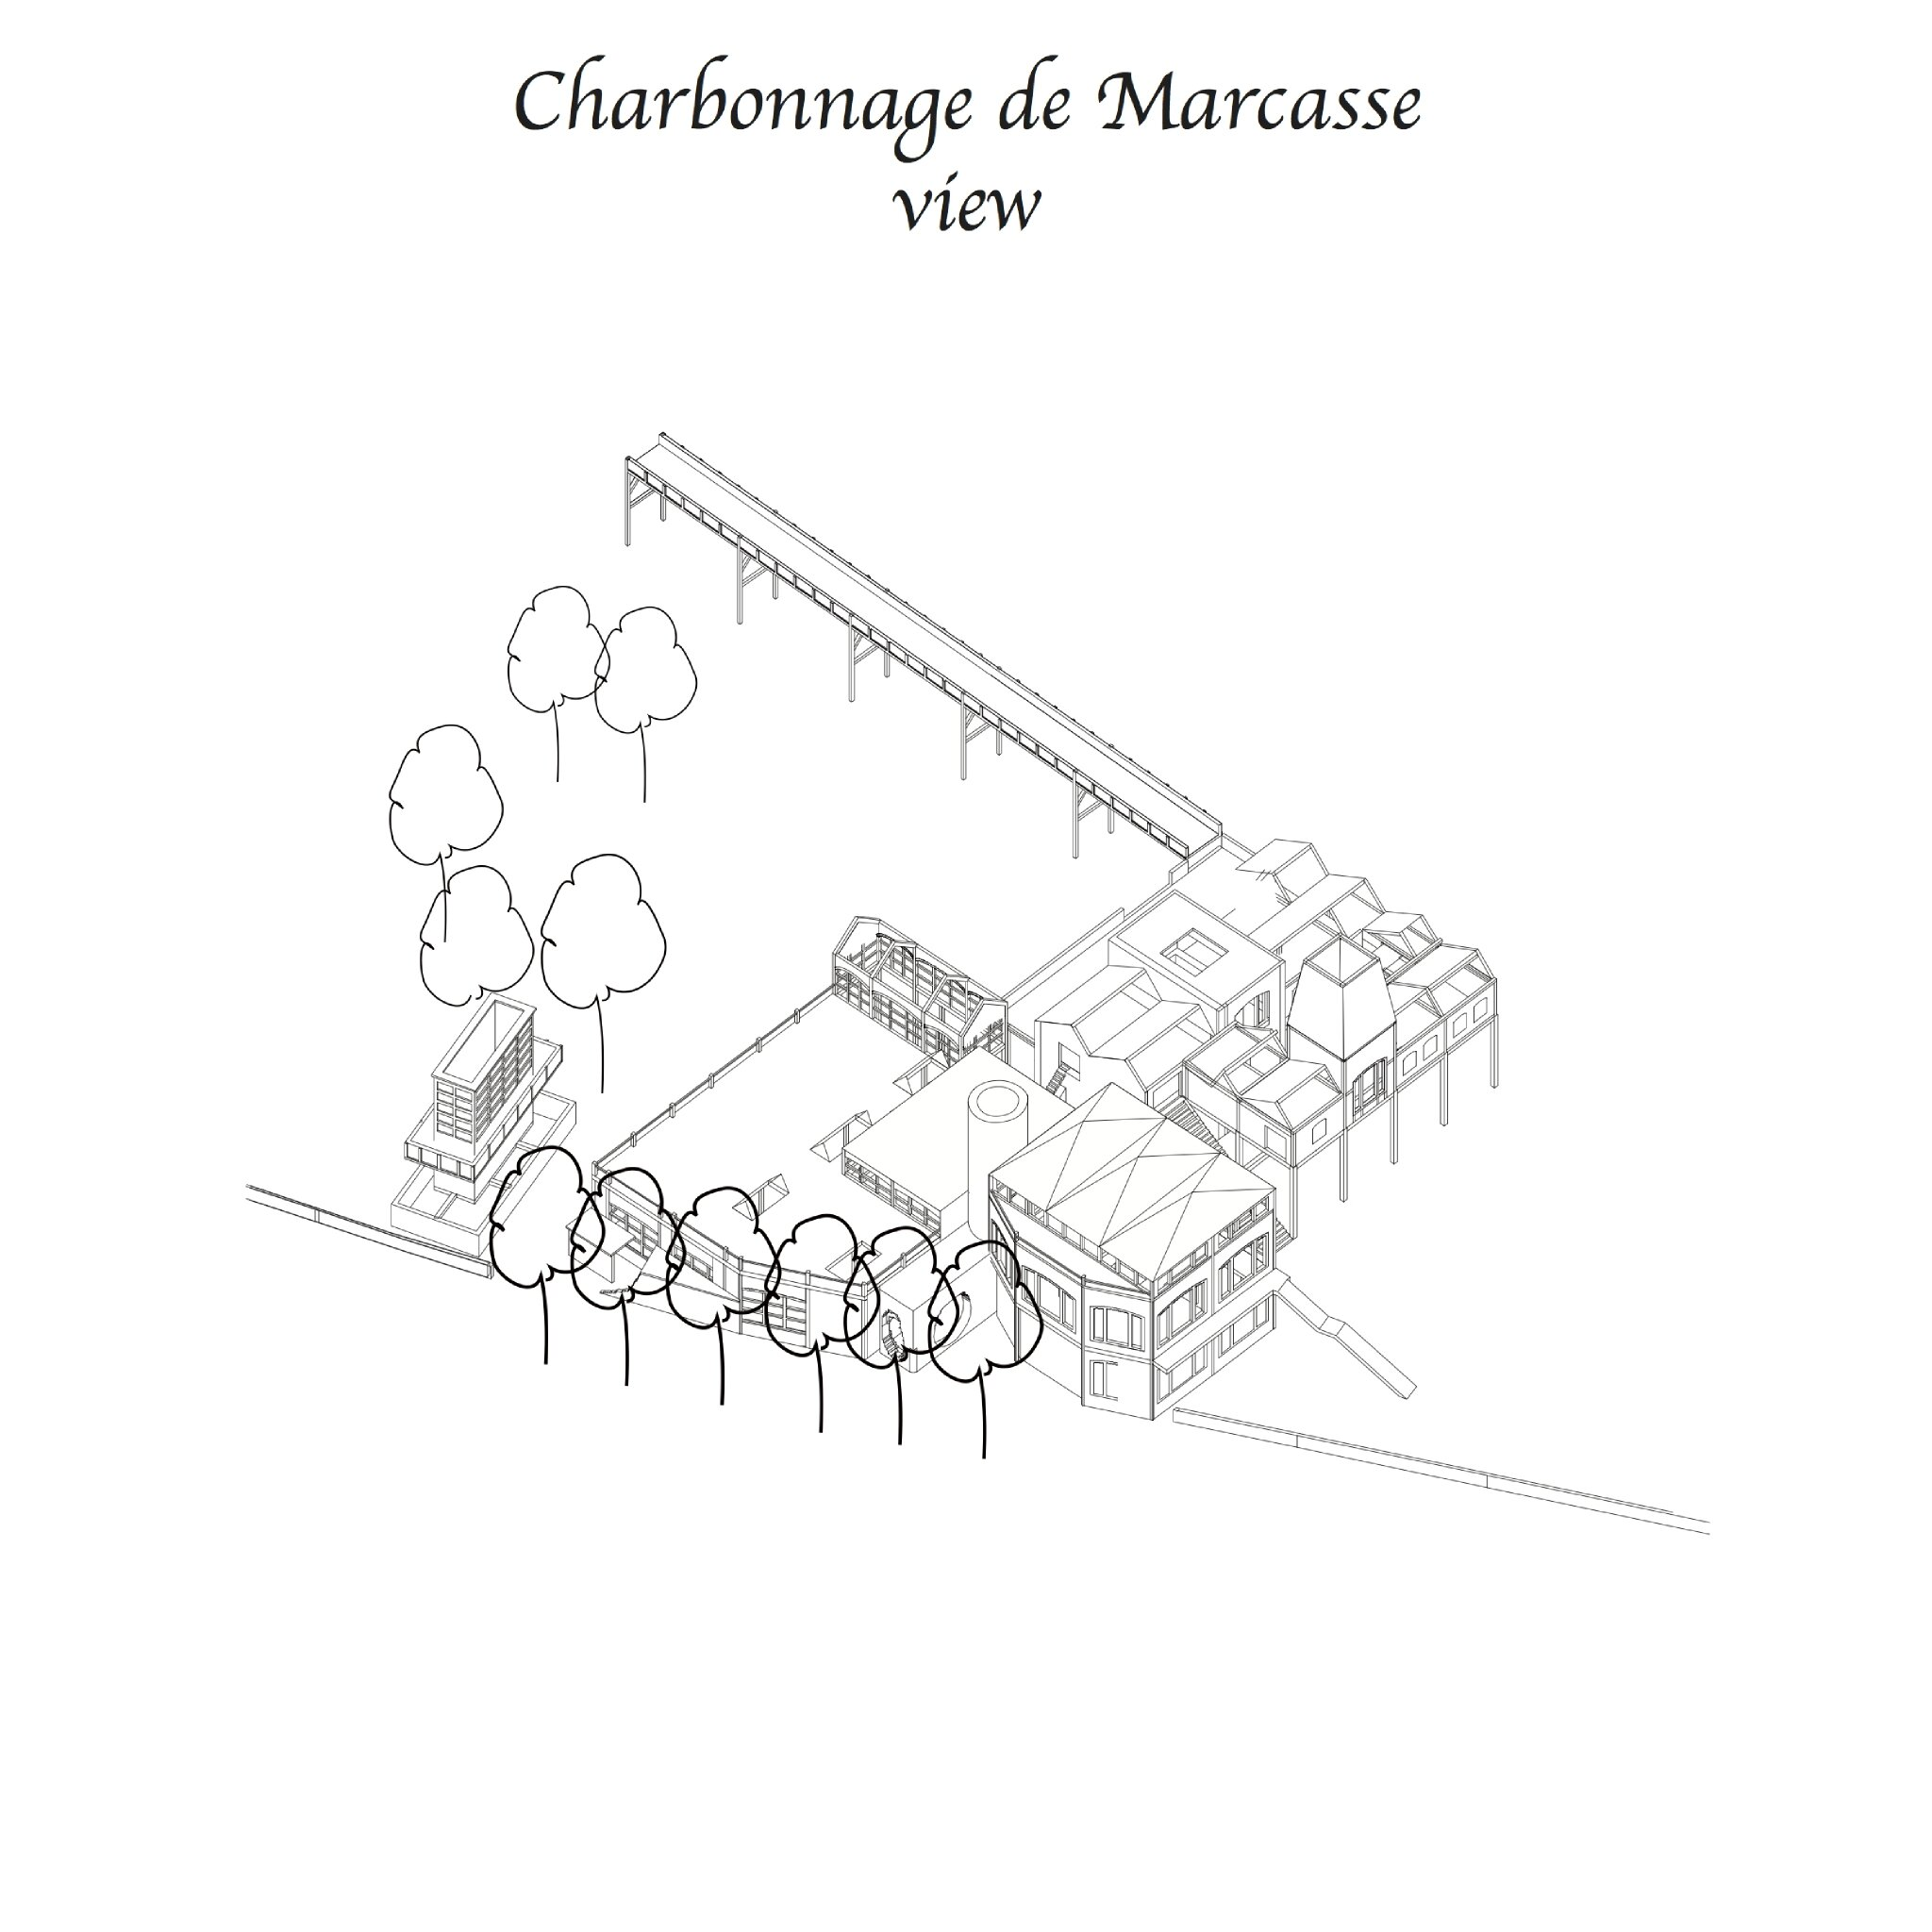 Masterplan for Marcasse; Vincent Van Gogh's favourite coal mine in the Borinage